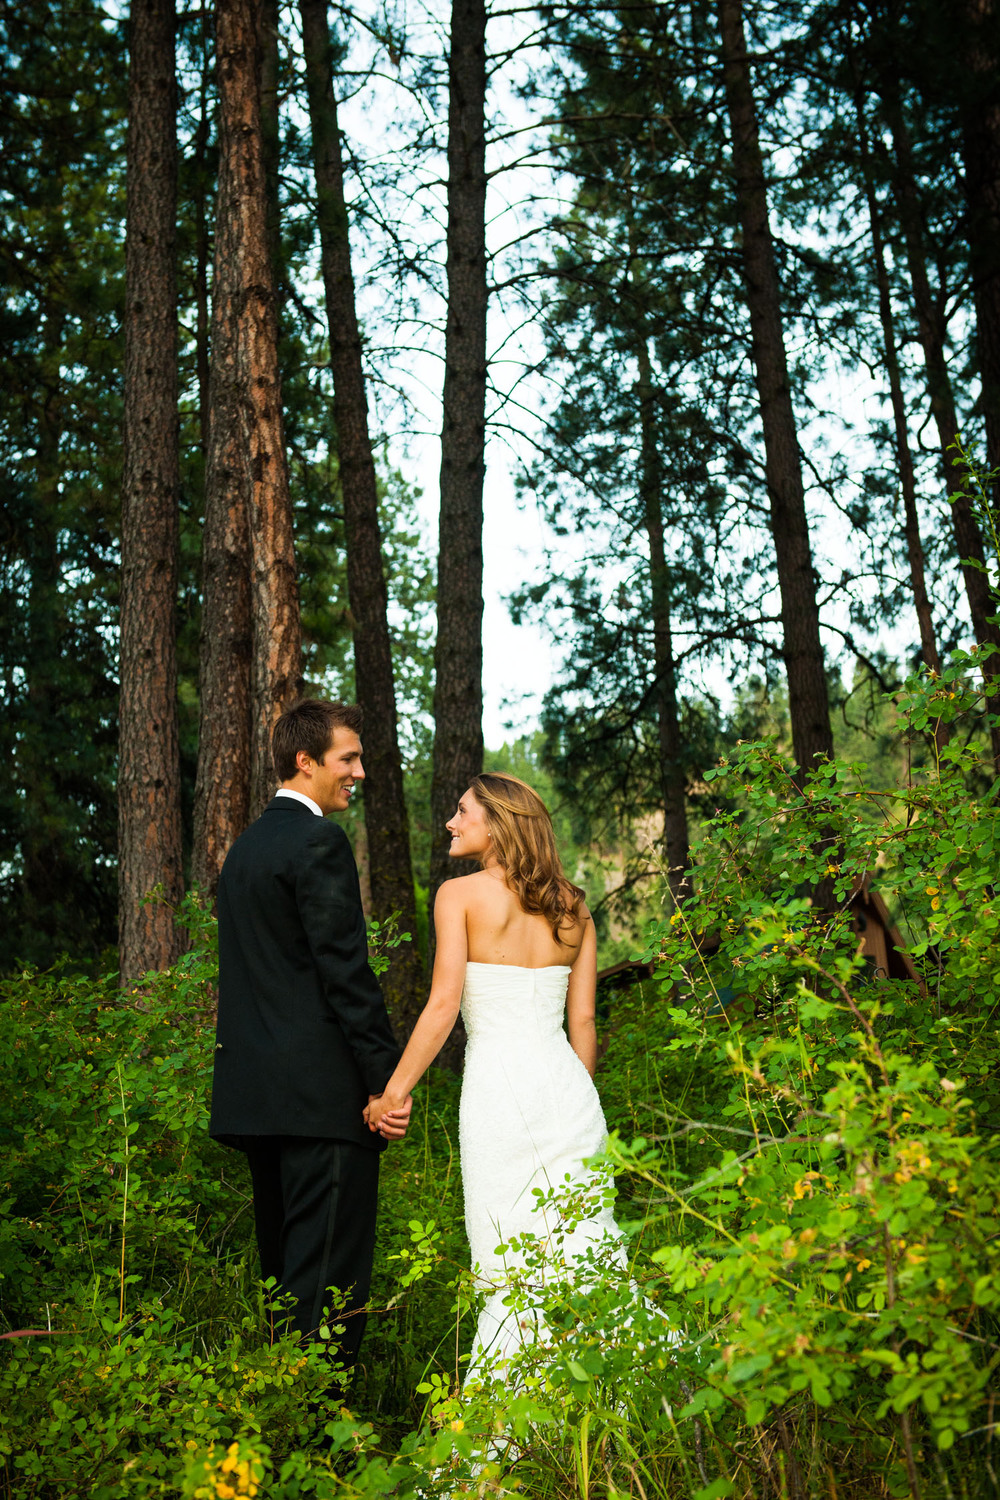 stewart_bertrand_wedding_photography_efwed-1044.jpg